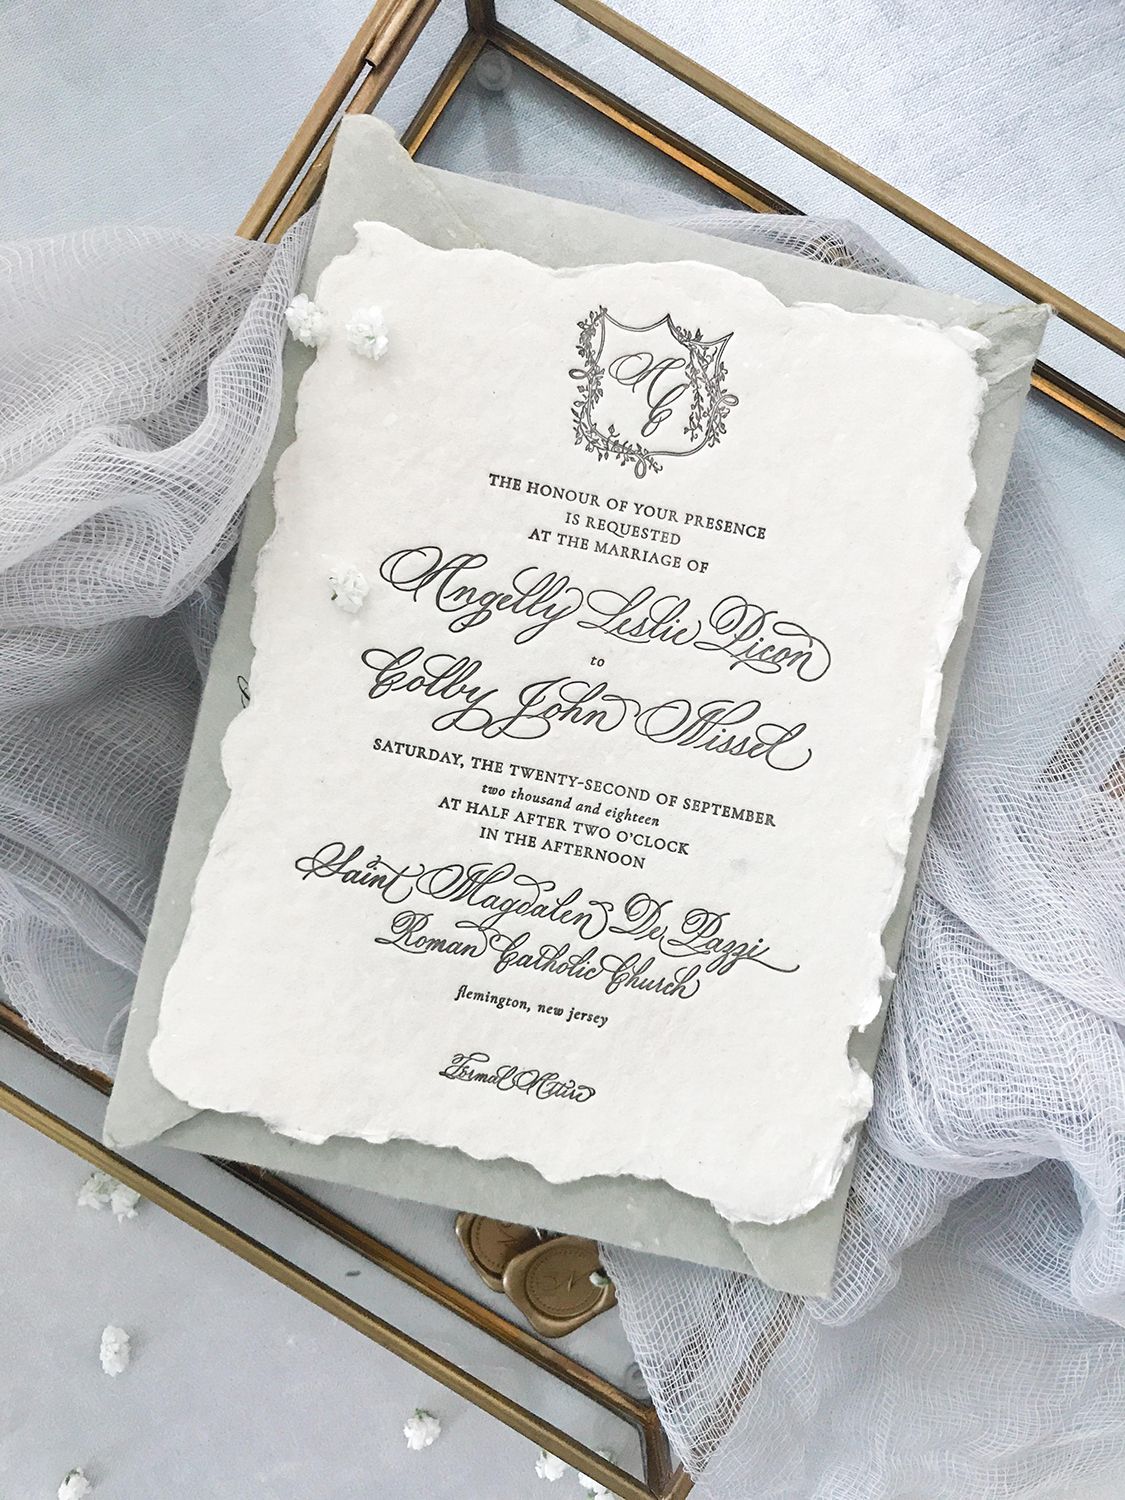 luxury-stationery-by-leslie-and-paper-heirloom-glass-box-custom-invitations-new-jersey-1.jpg